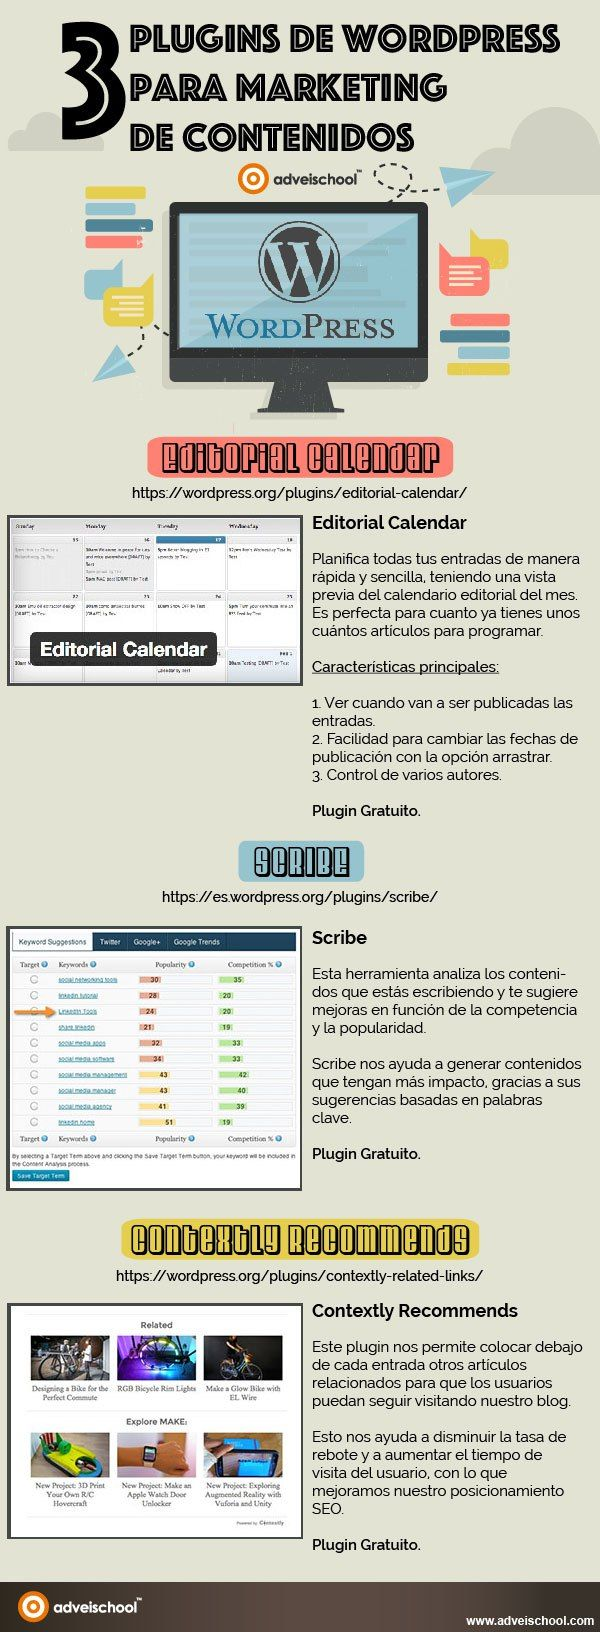 3 plugins sobre marketing de contenidos para WordPress #infografia #infographic #marketing | TICs y Formación